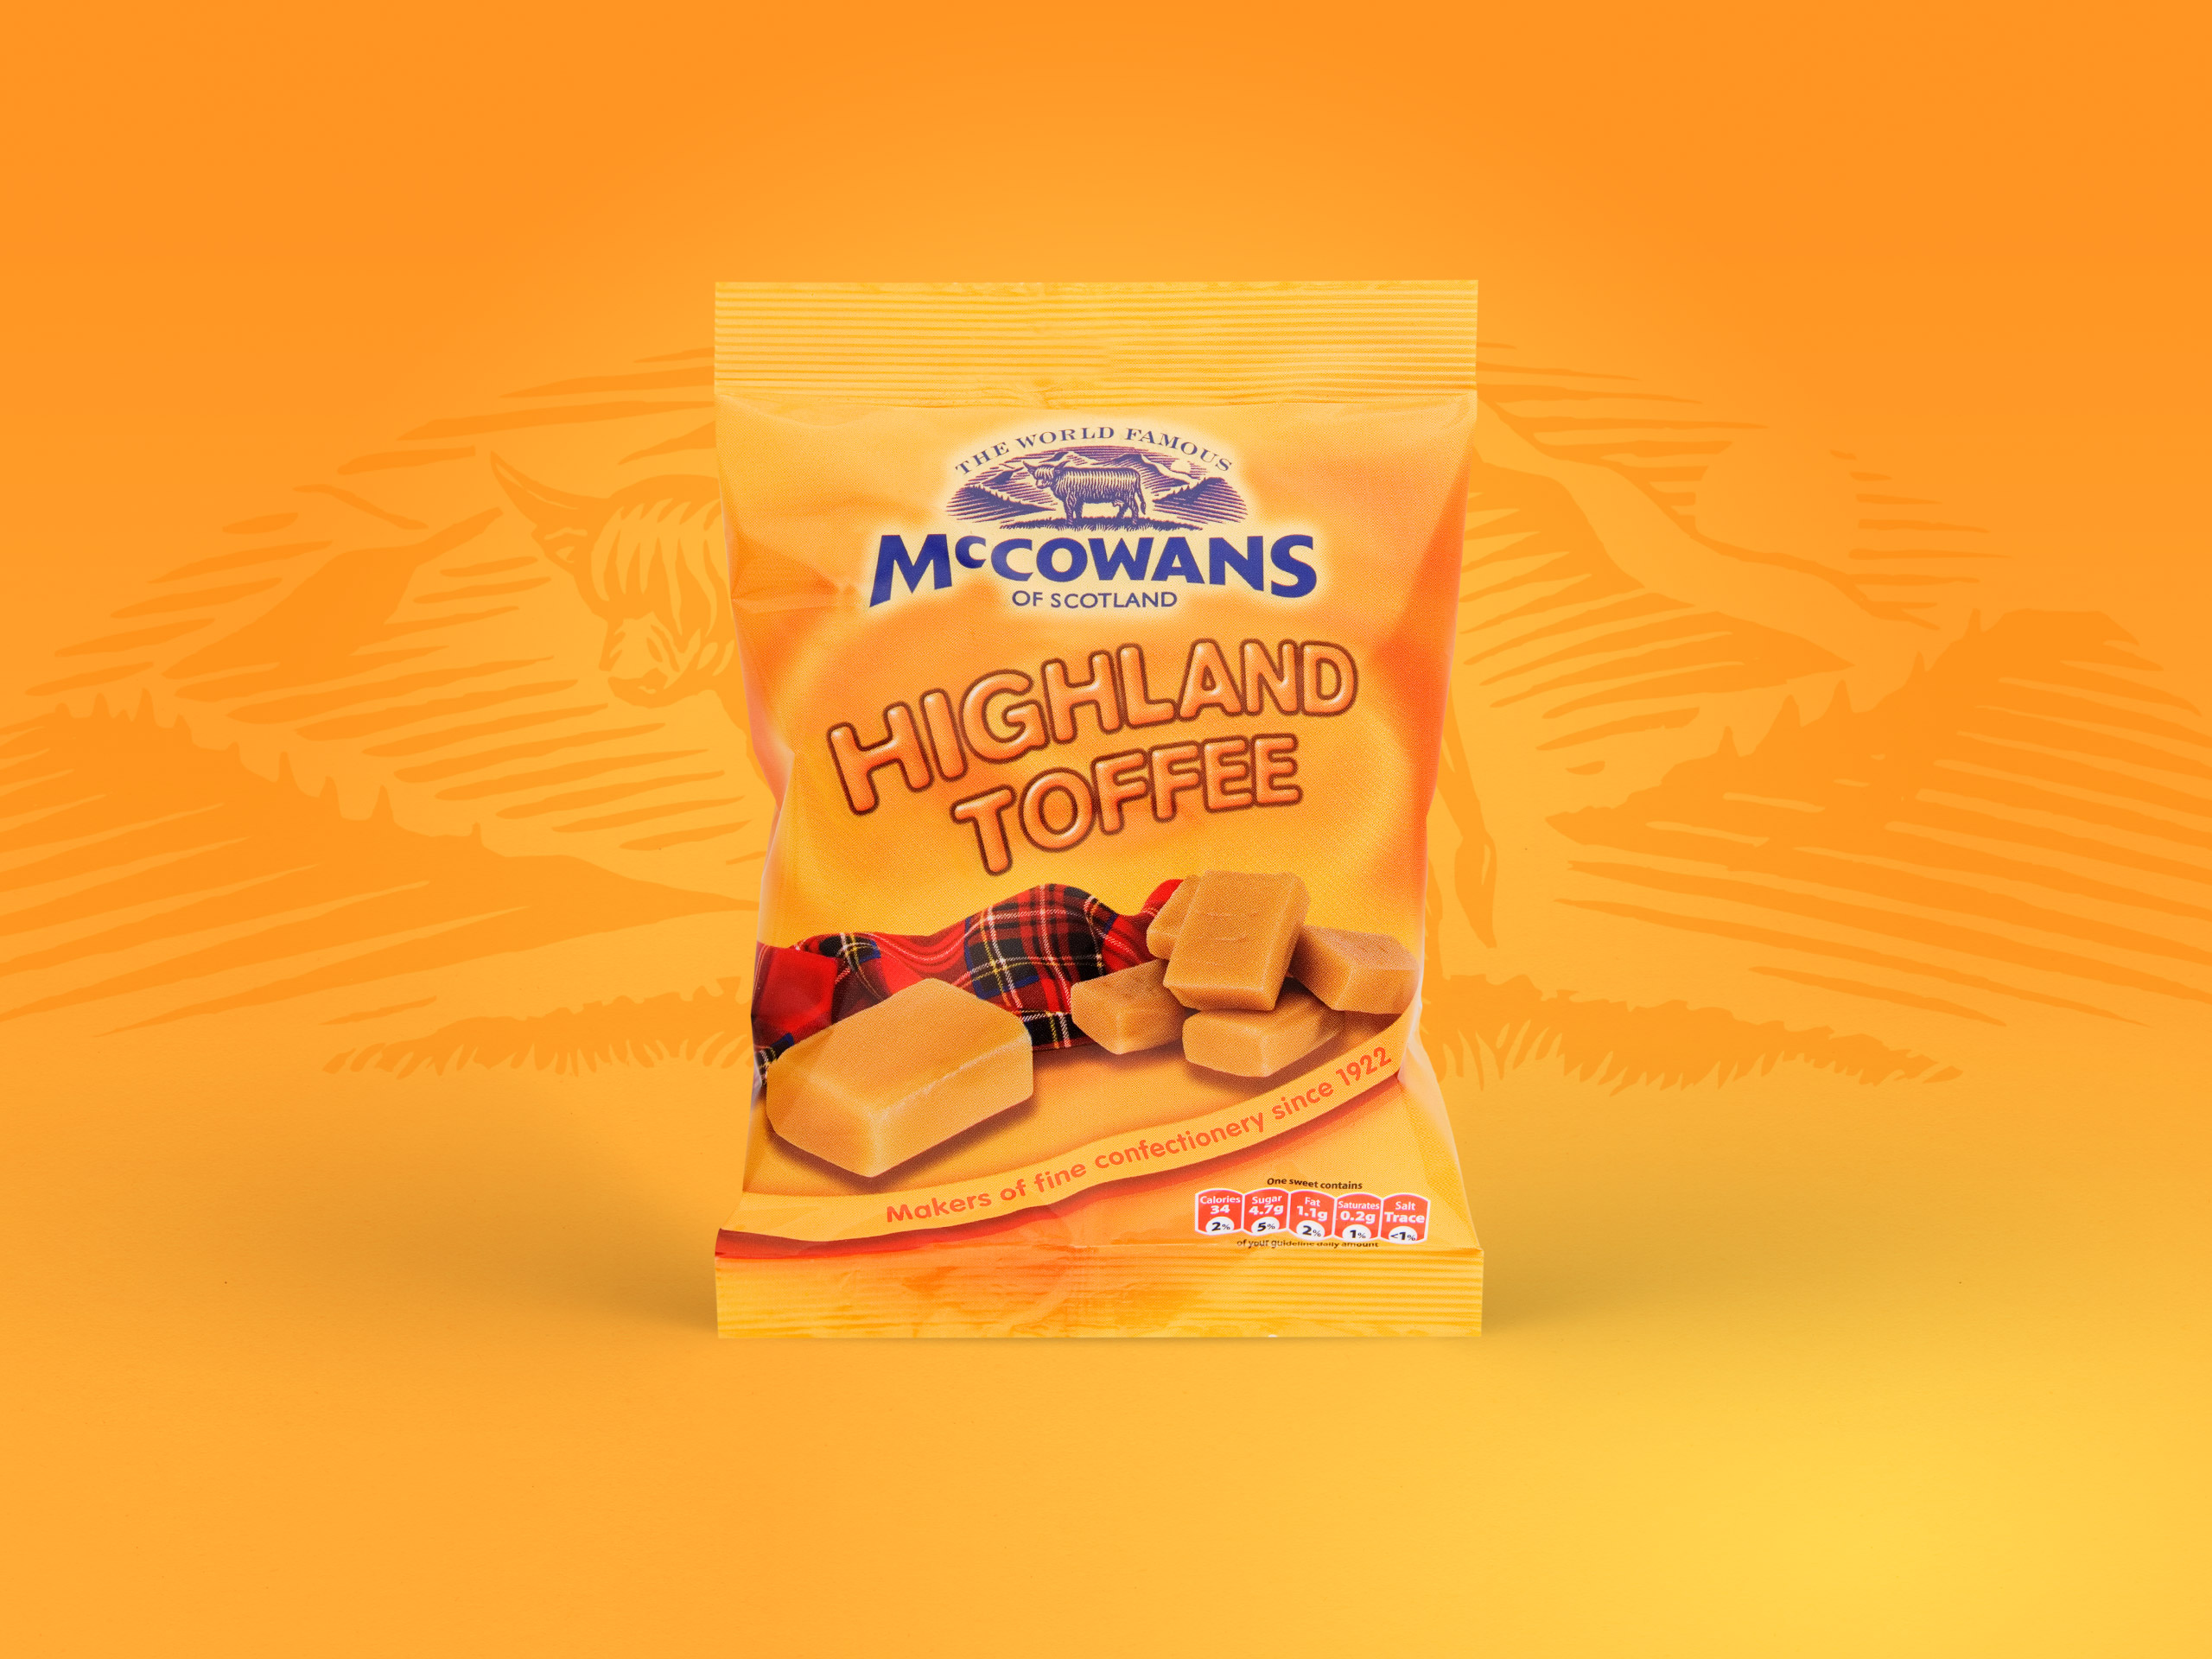 McCowans - Highland Toffee Packaging - Packaging Design